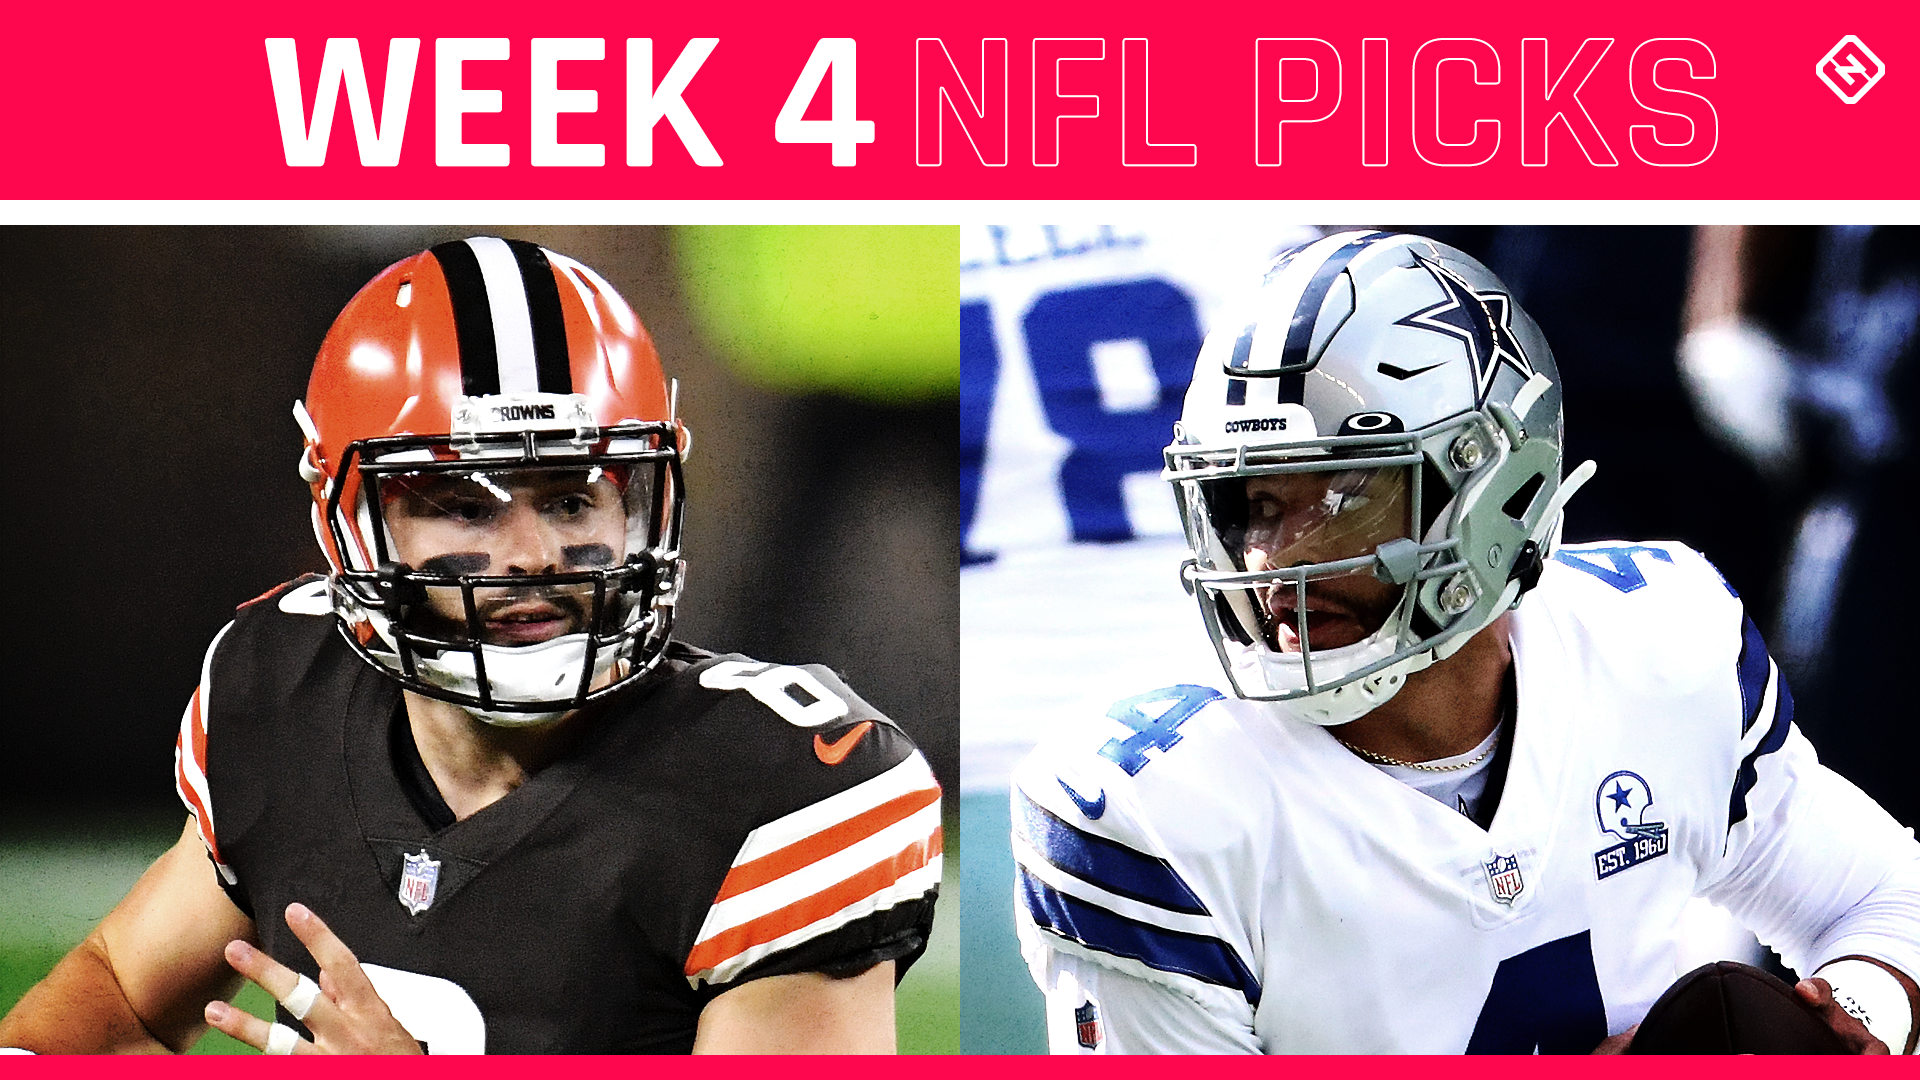 NFL picks, predictions for Week 4: Browns upset Cowboys; Packers, Bears stay unbeaten